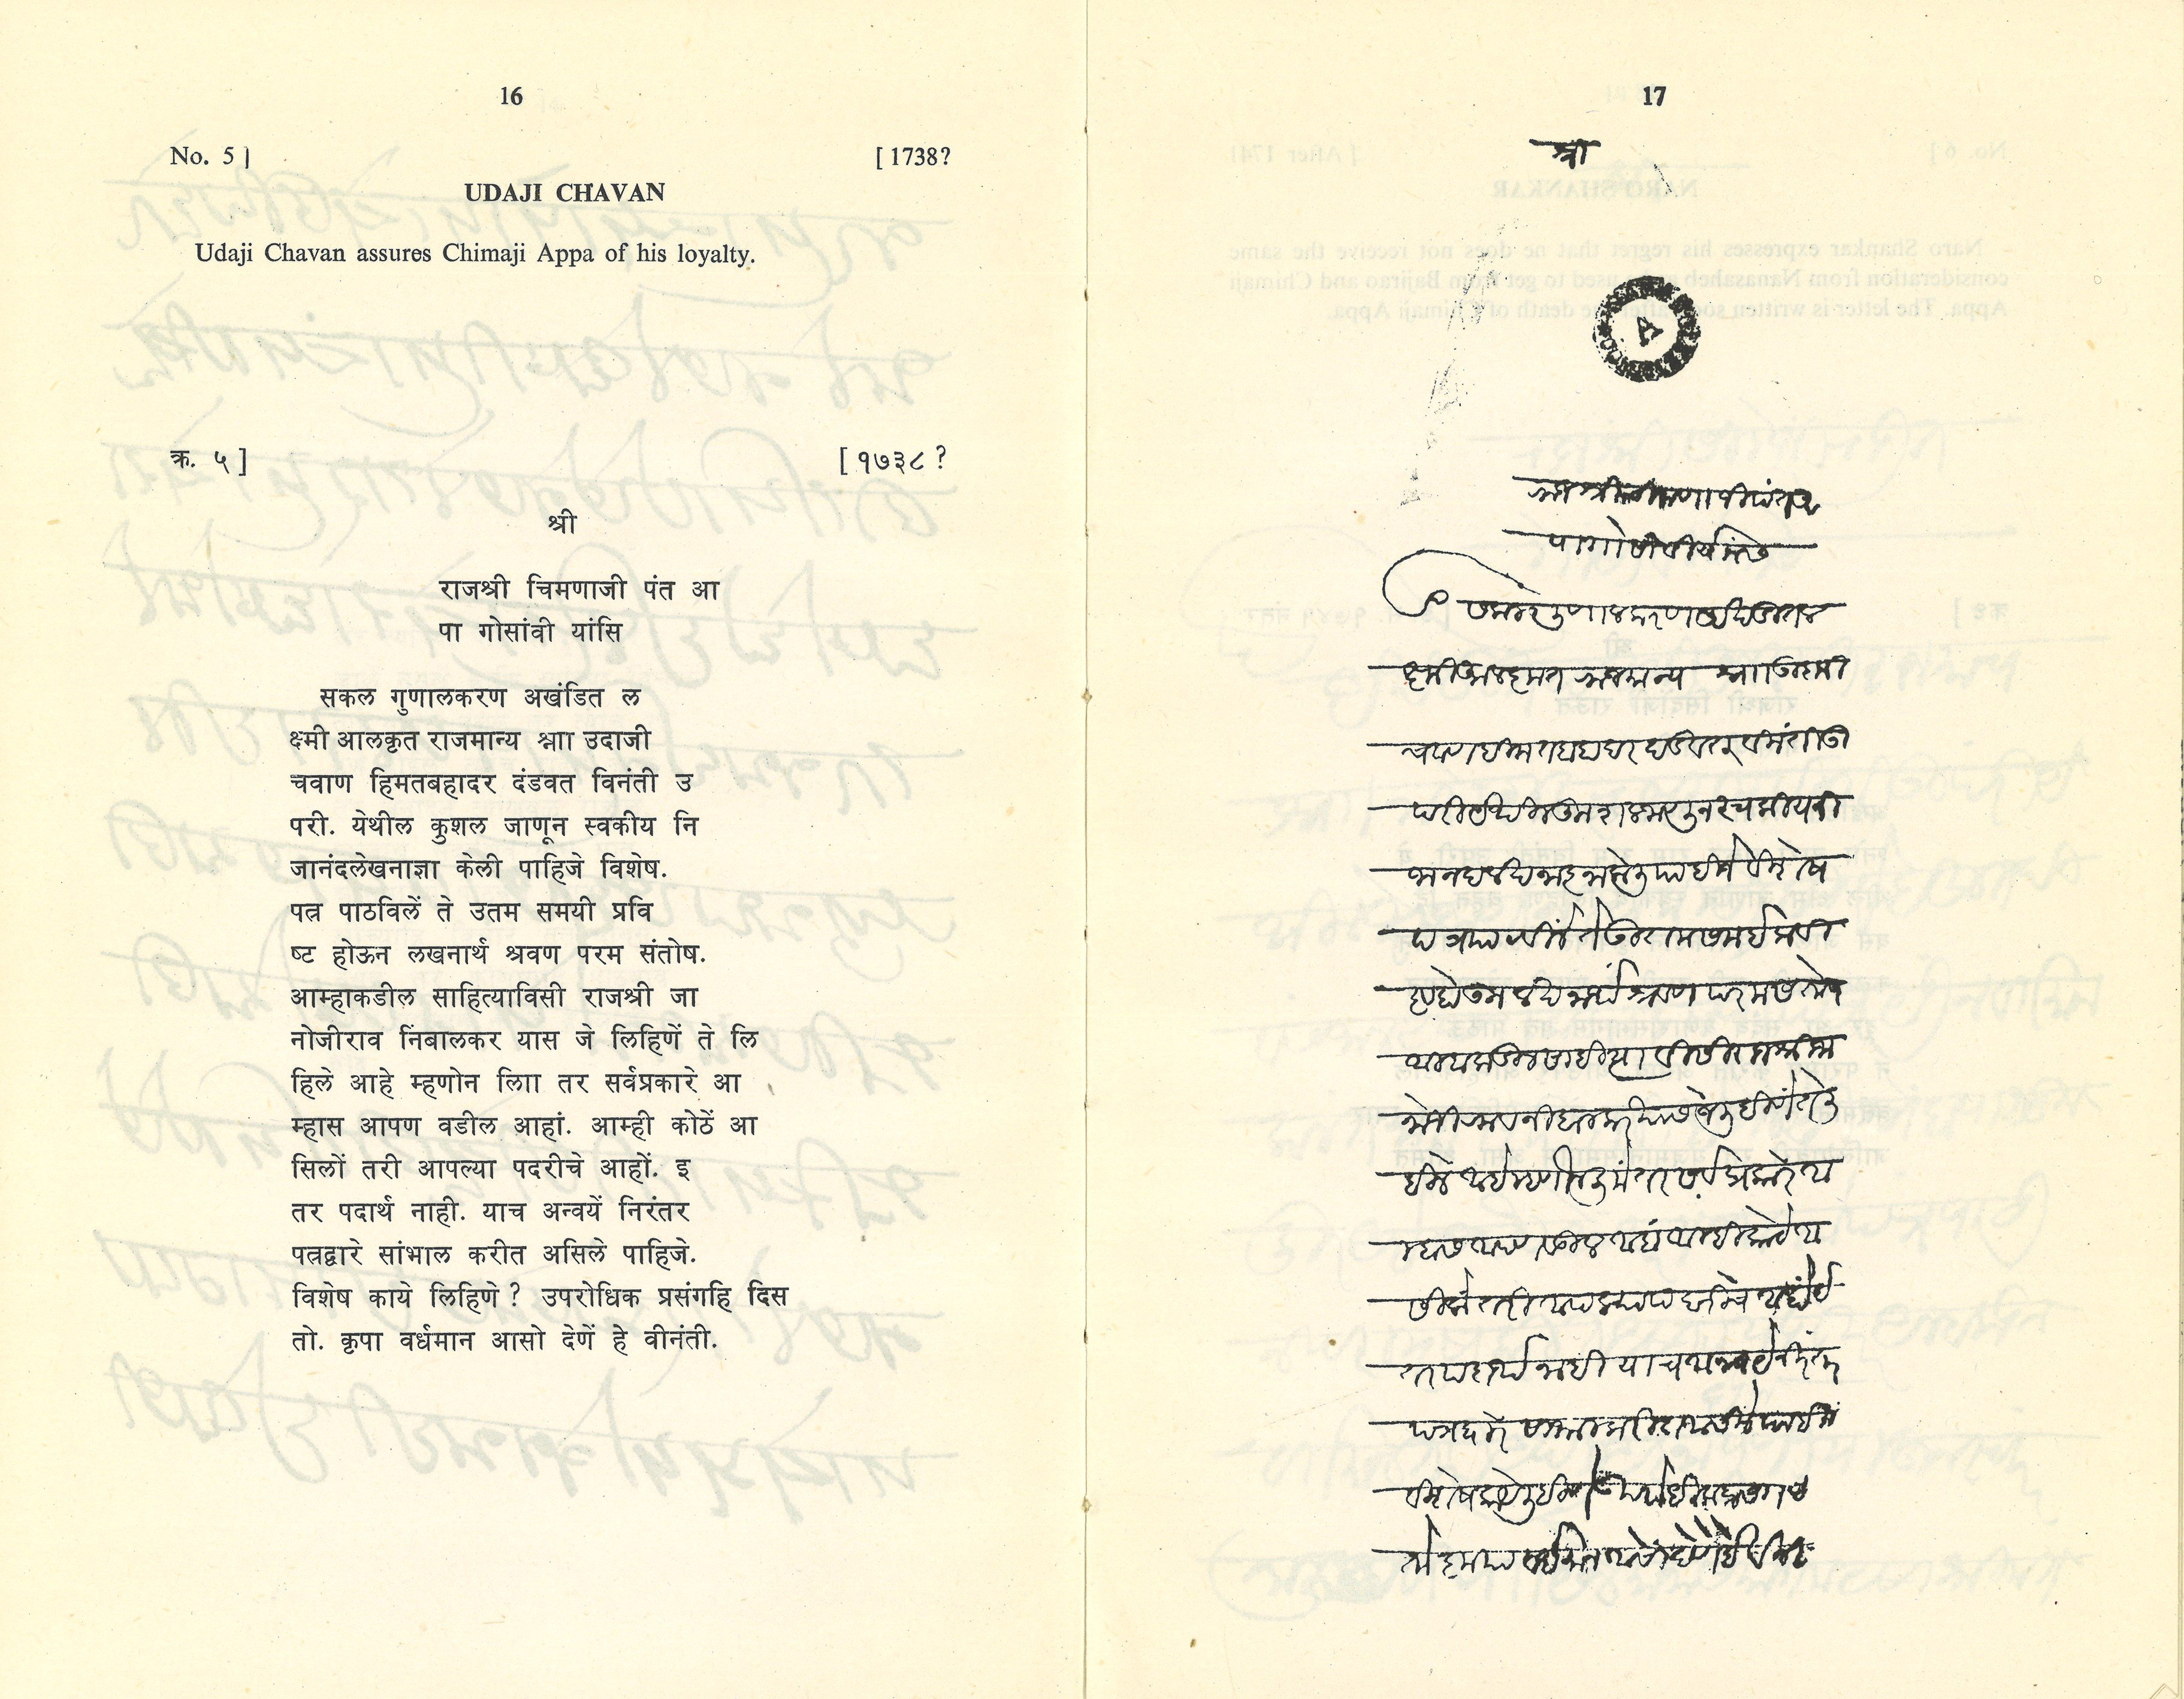 Pp. 16-17 of Illustrative Modi Documents, a specimen of Marathi Archival Papers and its transcription in Devanagari.